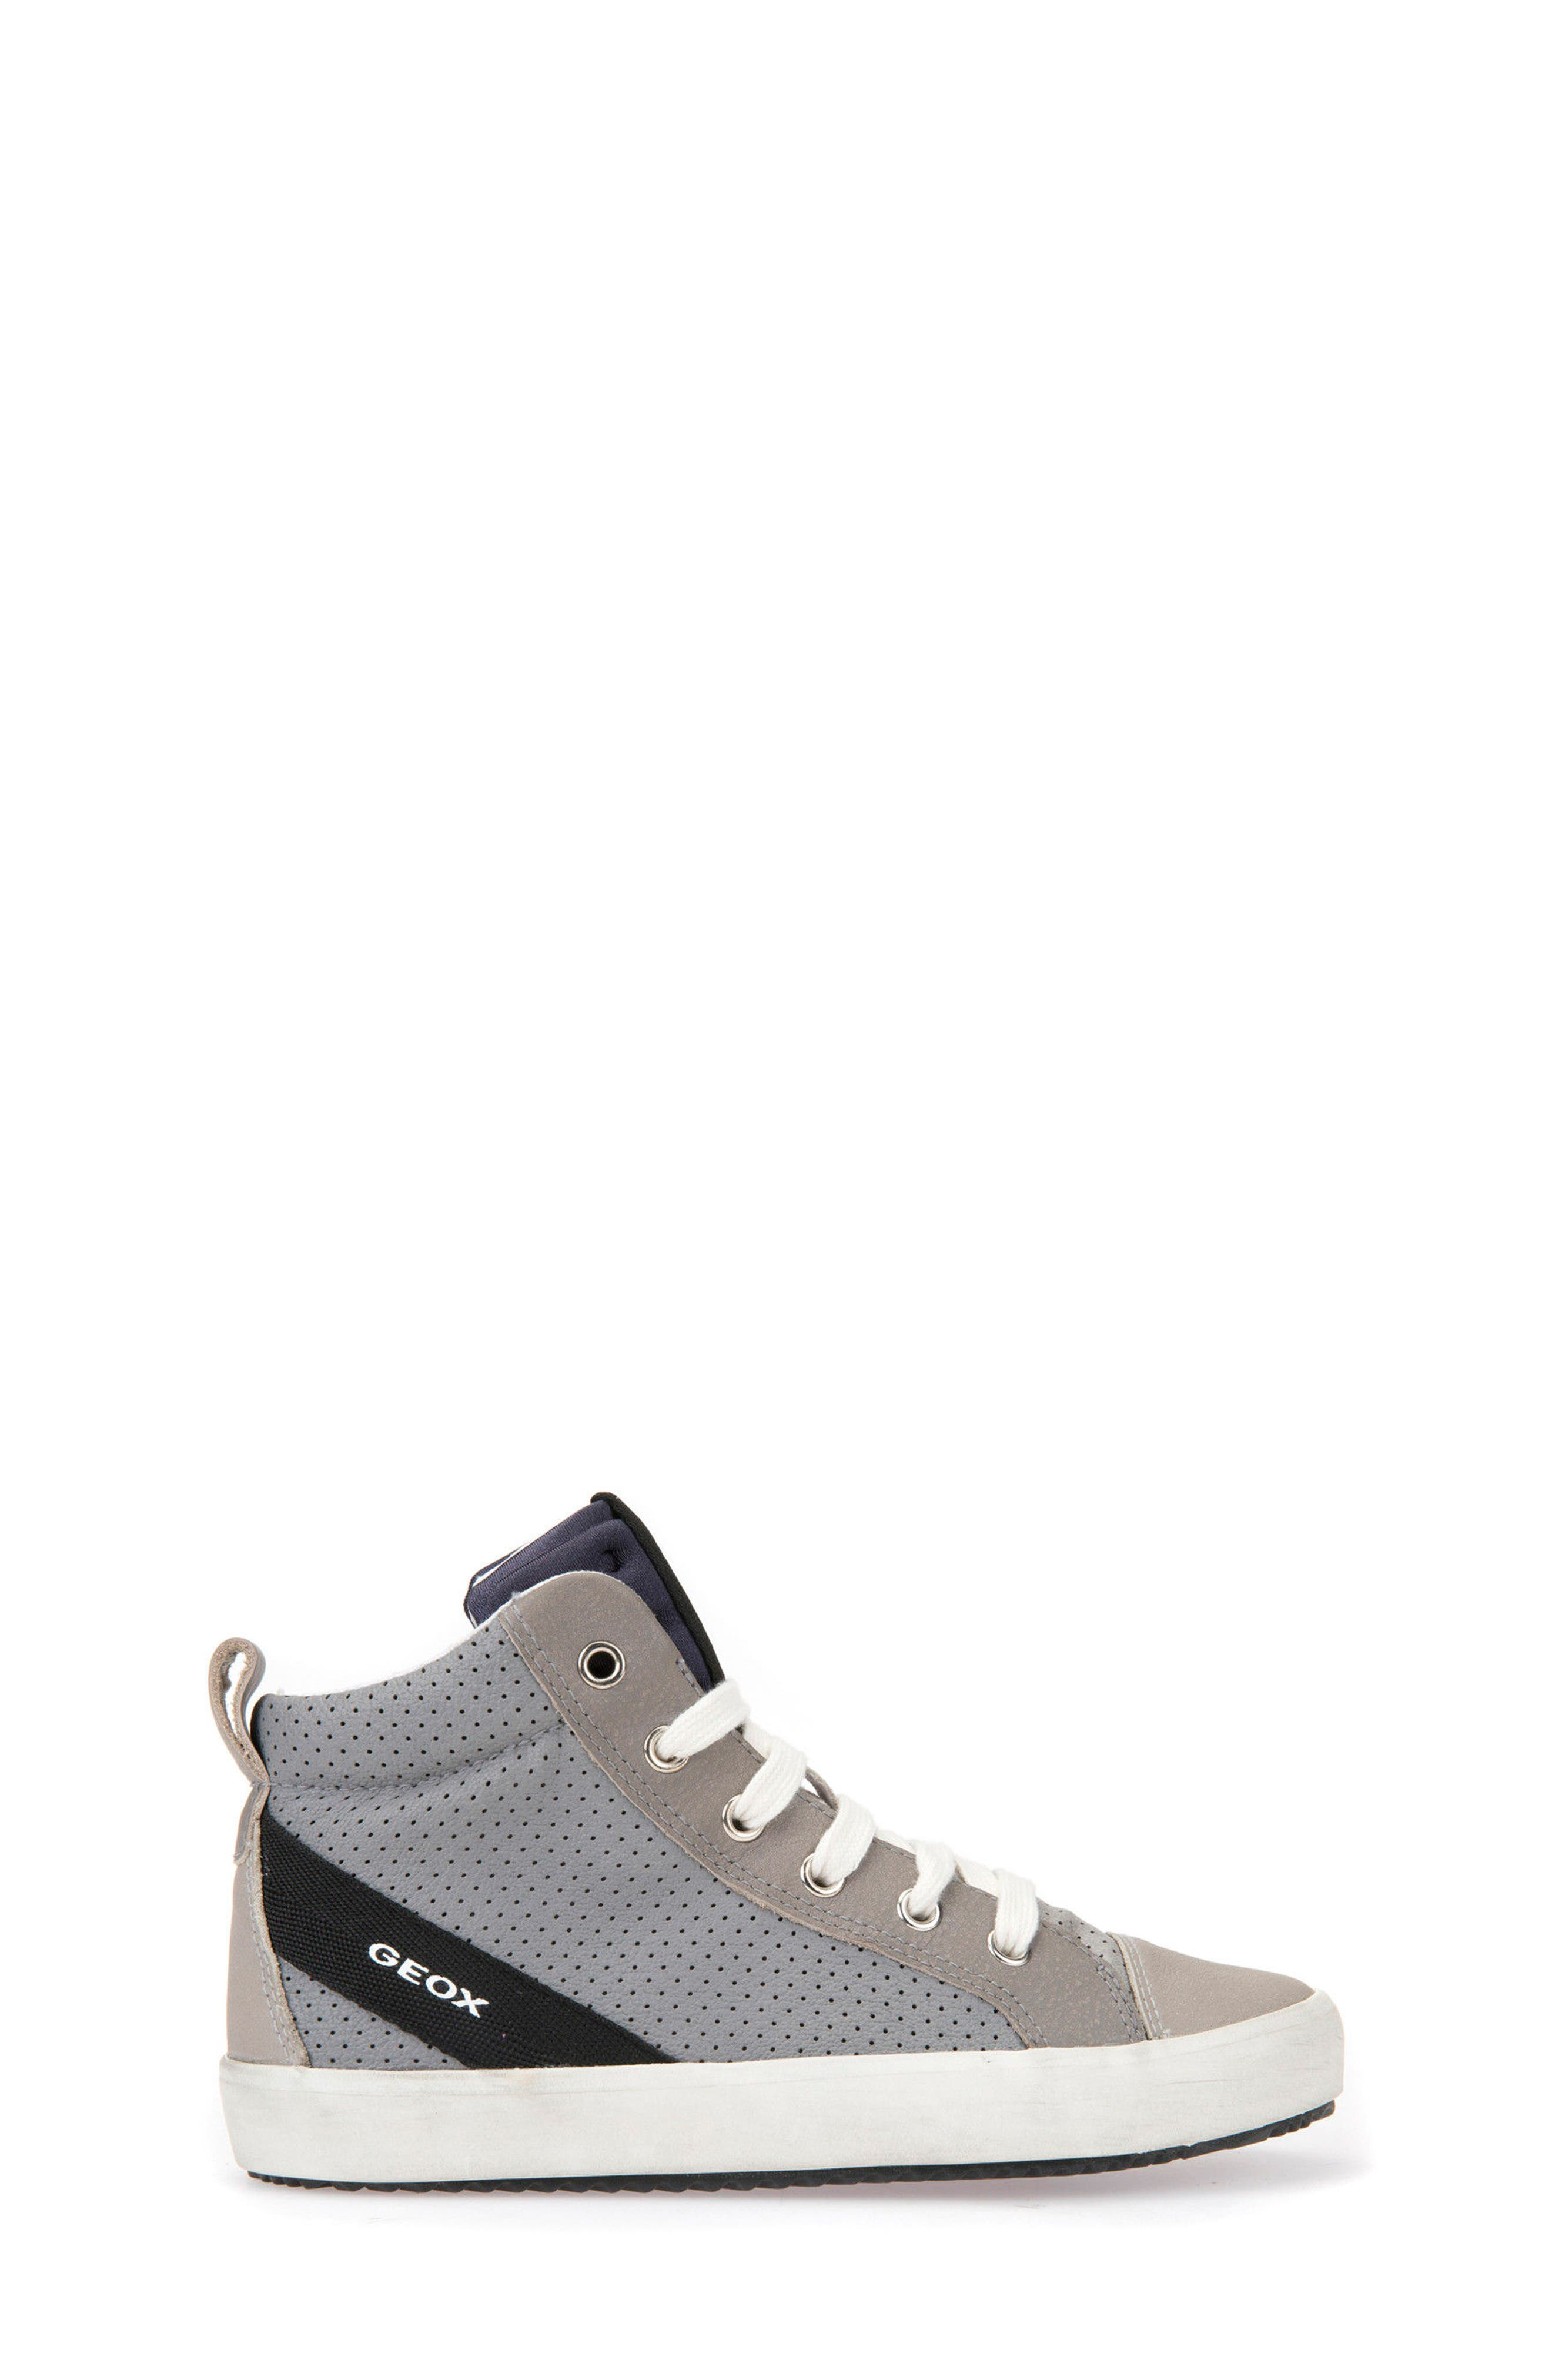 Alonisso Perforated Mid Top Sneaker,                             Alternate thumbnail 3, color,                             Grey/ Light Grey